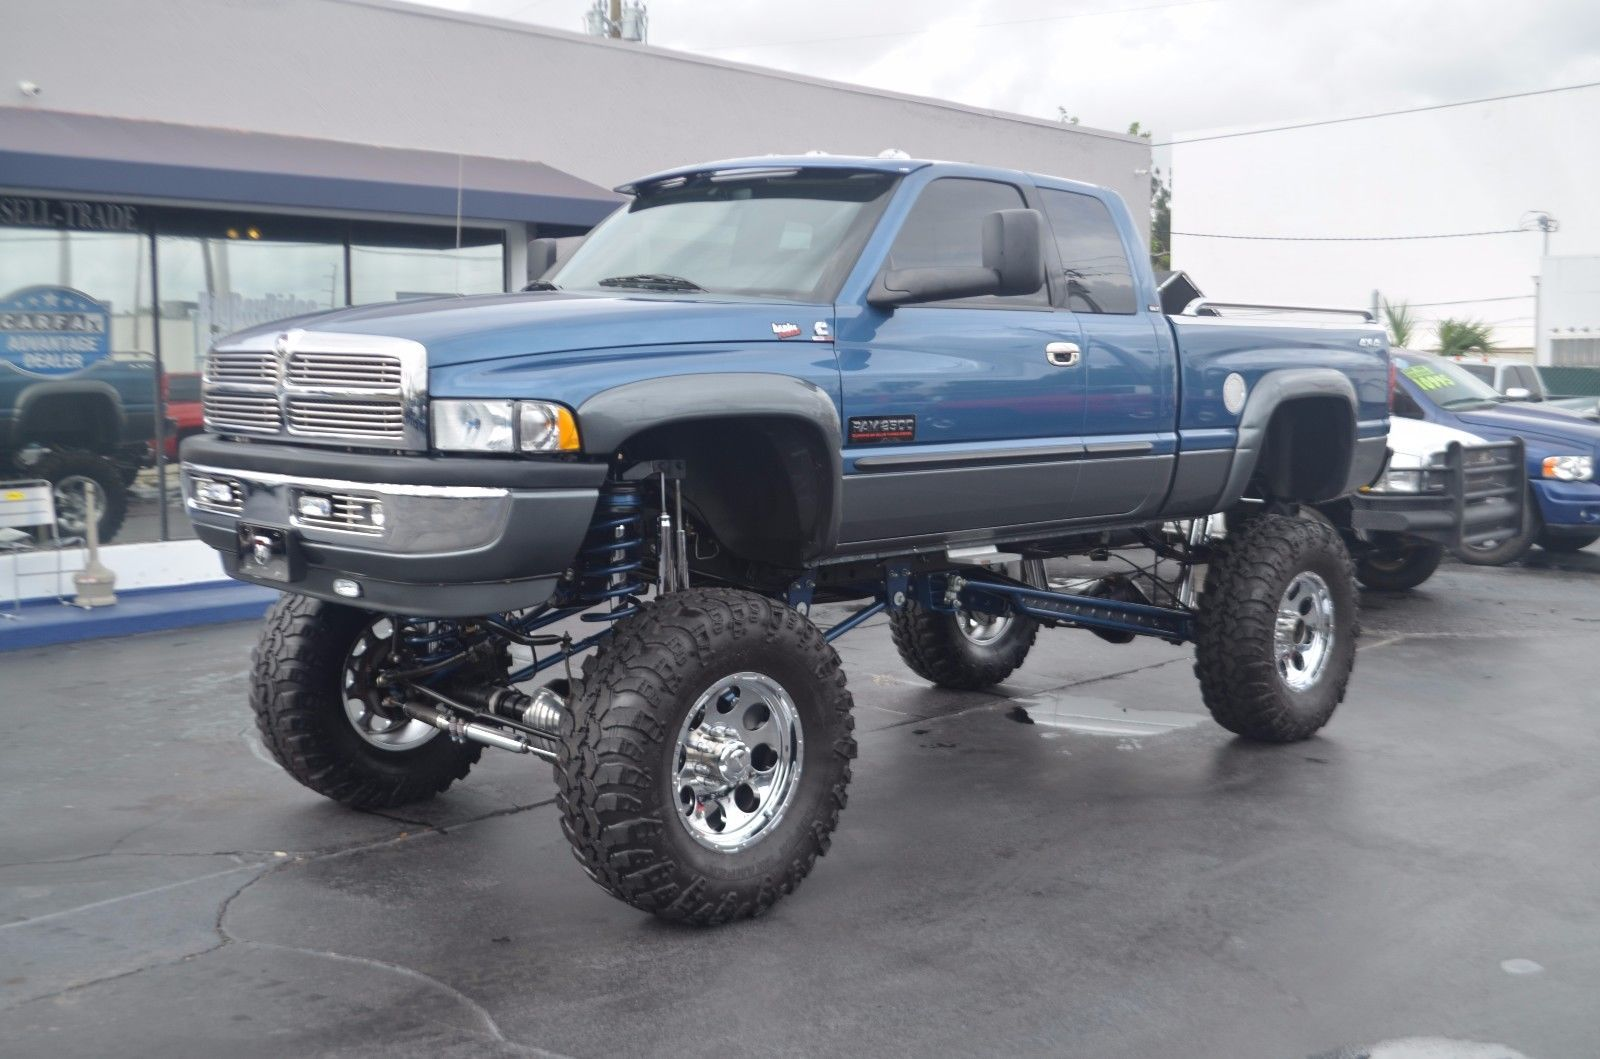 2018 dodge ram 2500 lifted new up ing cars 2019 2020 10th Gen Cummins 2018 dodge ram 2500 lifted great 2002 dodge ram 2500 laramie slt plus 2002